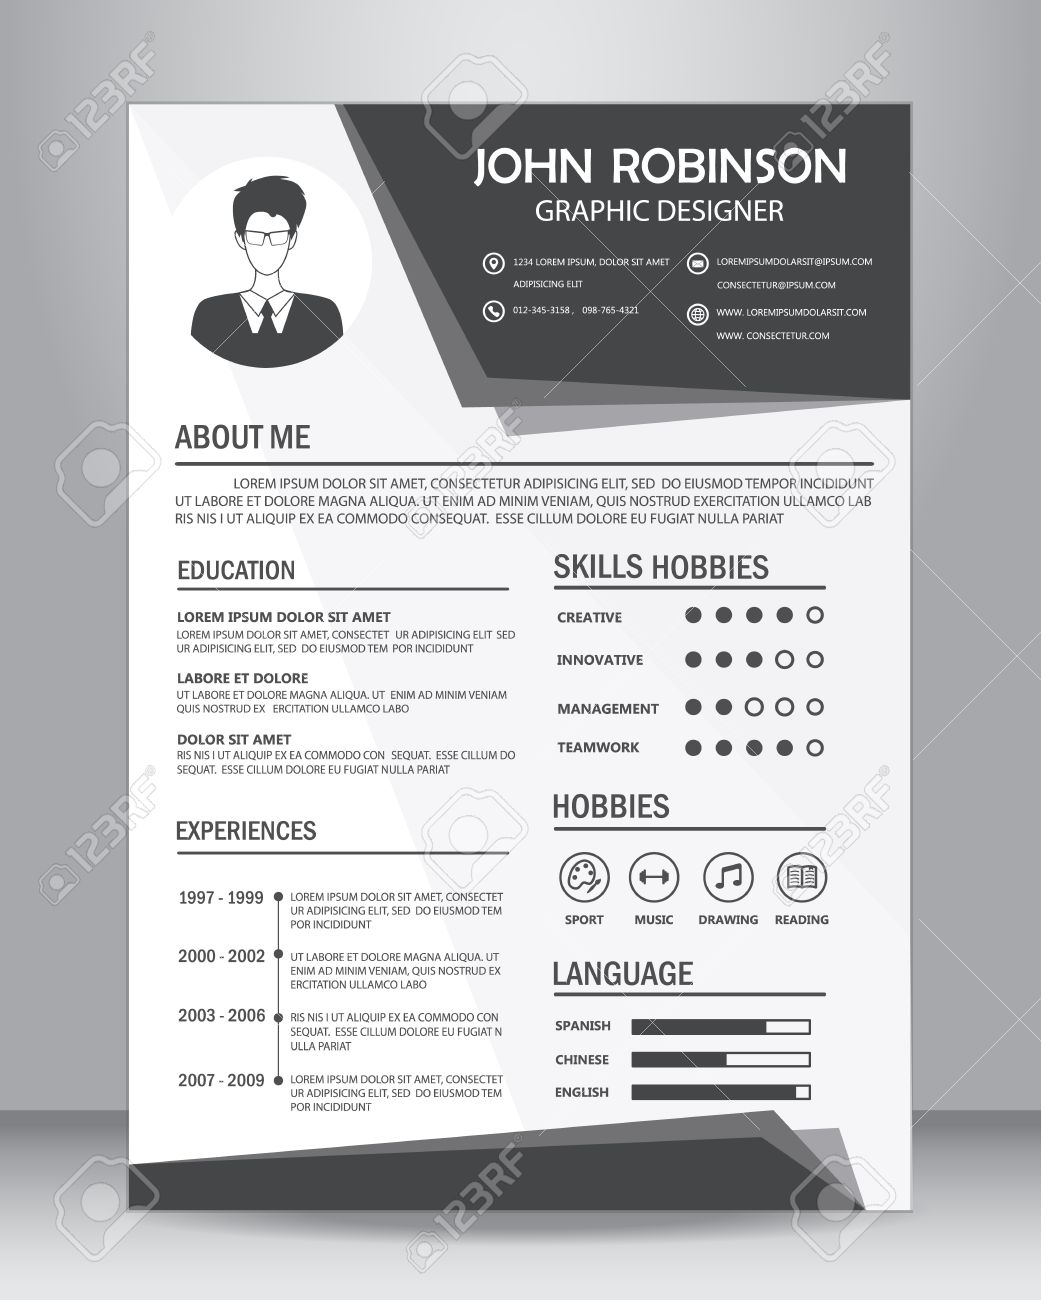 job resume or cv template layout template in a size vector job resume or cv template layout template in a4 size vector illustration stock vector